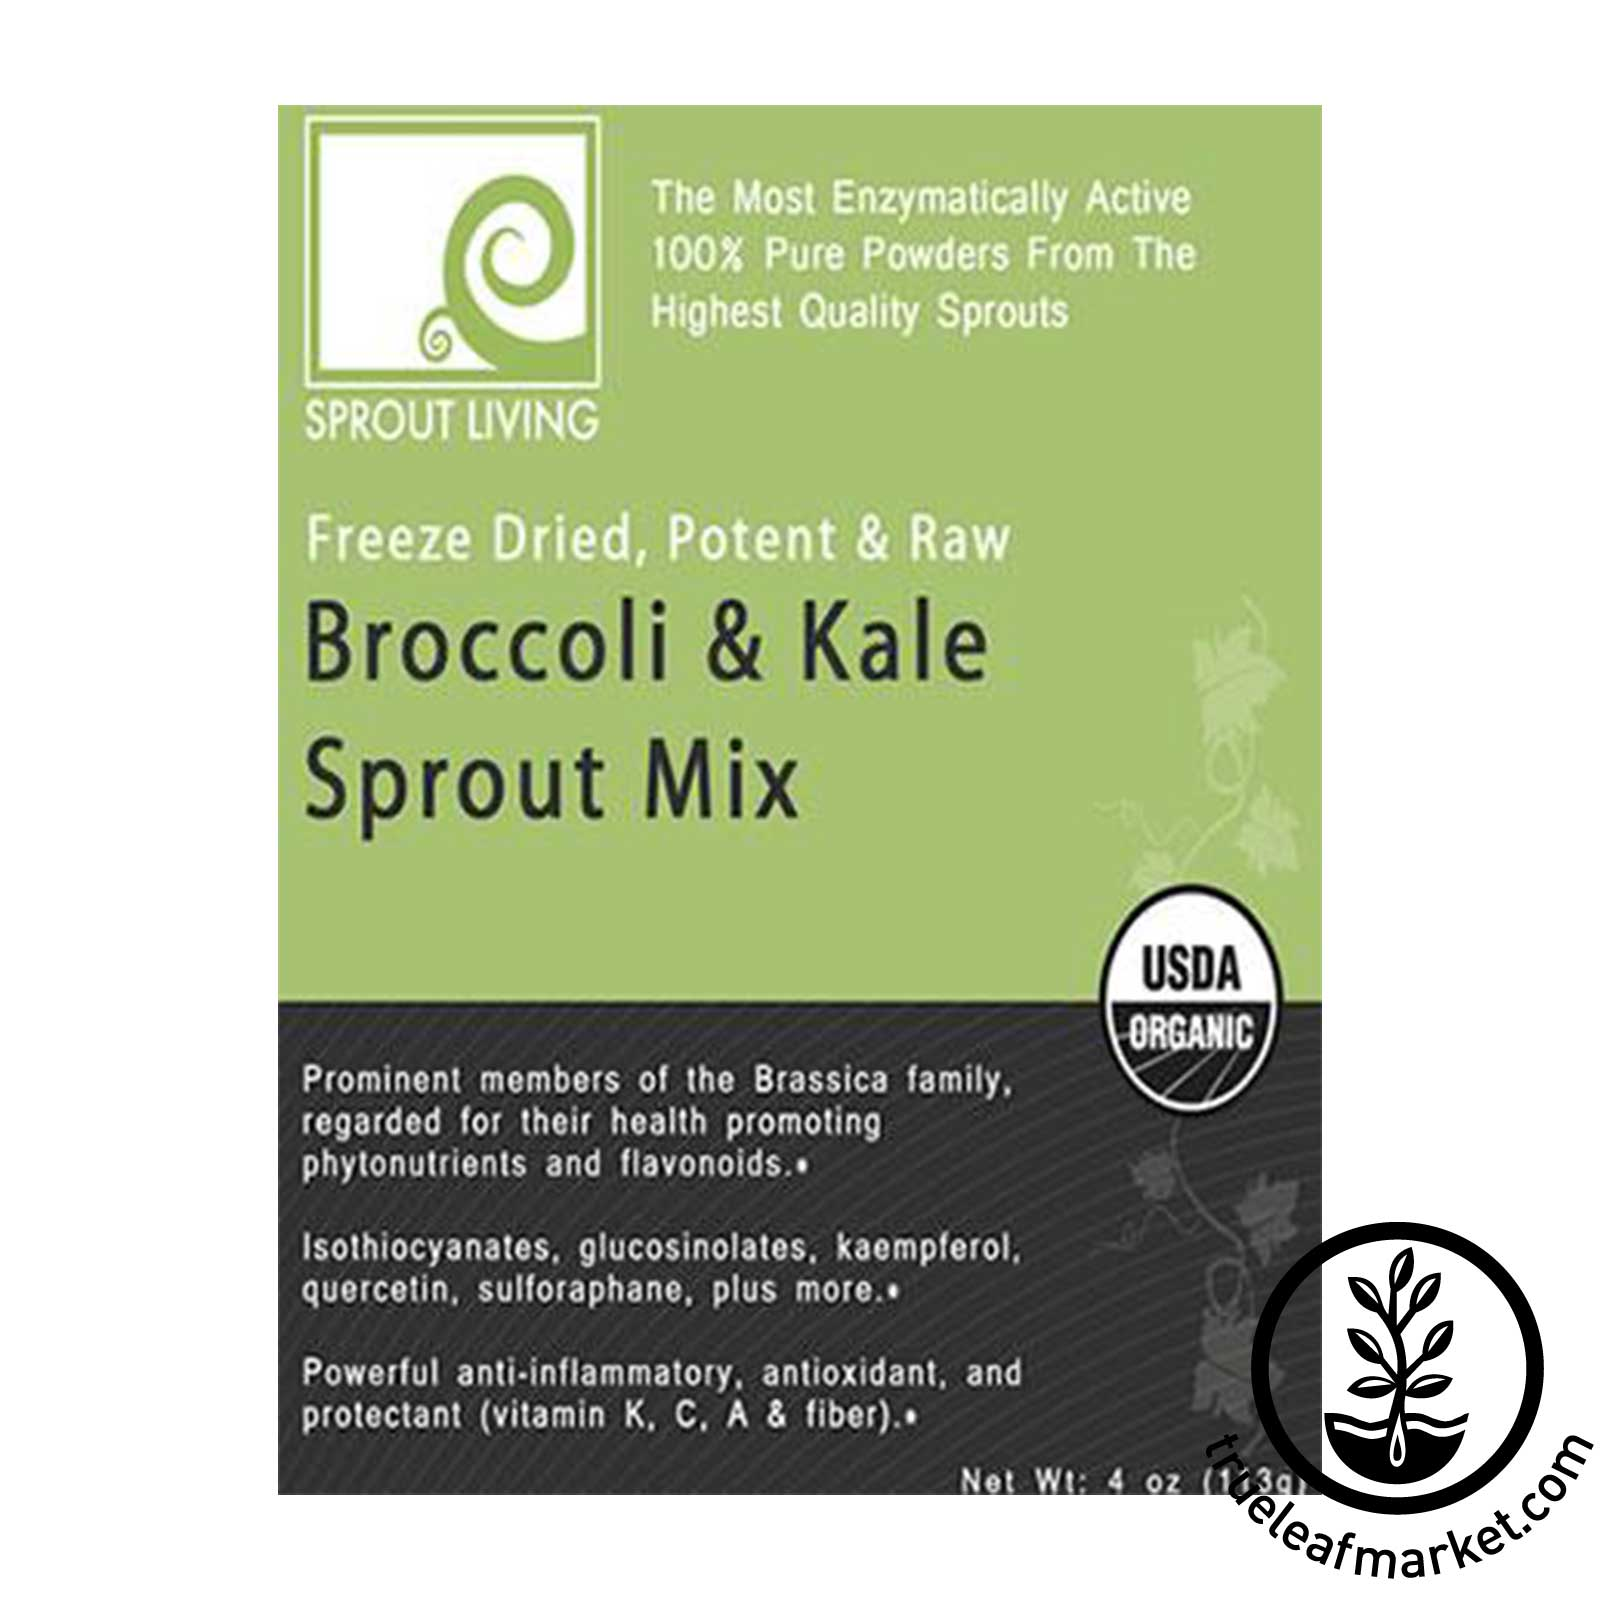 Broccoli & Kale Sprout Powder Mix by Sprout Living - Front Label